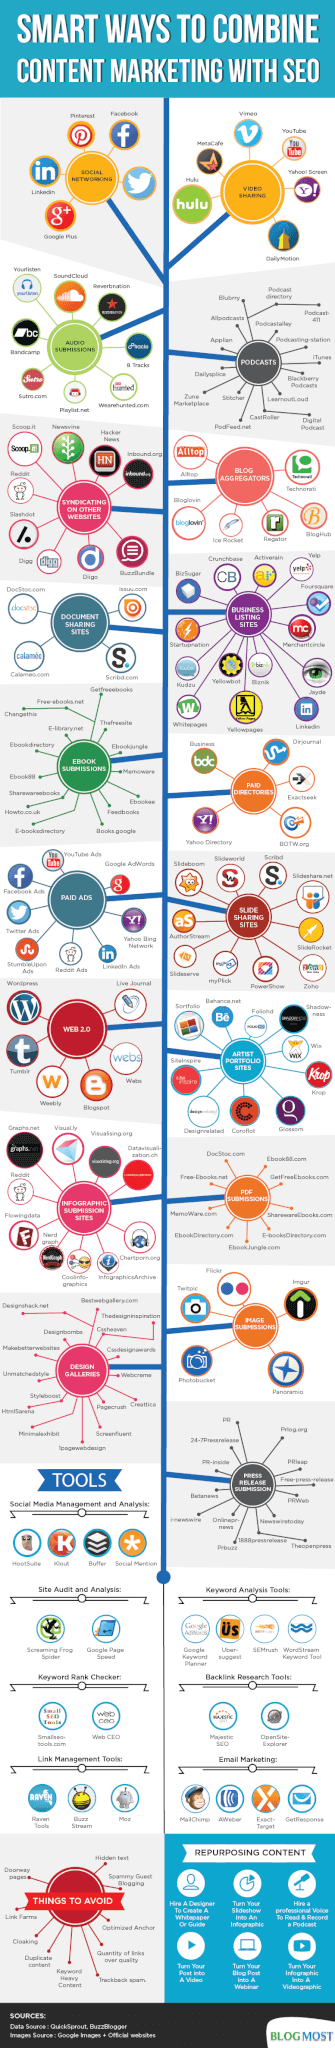 Content Marketing SEO Resources and Methods